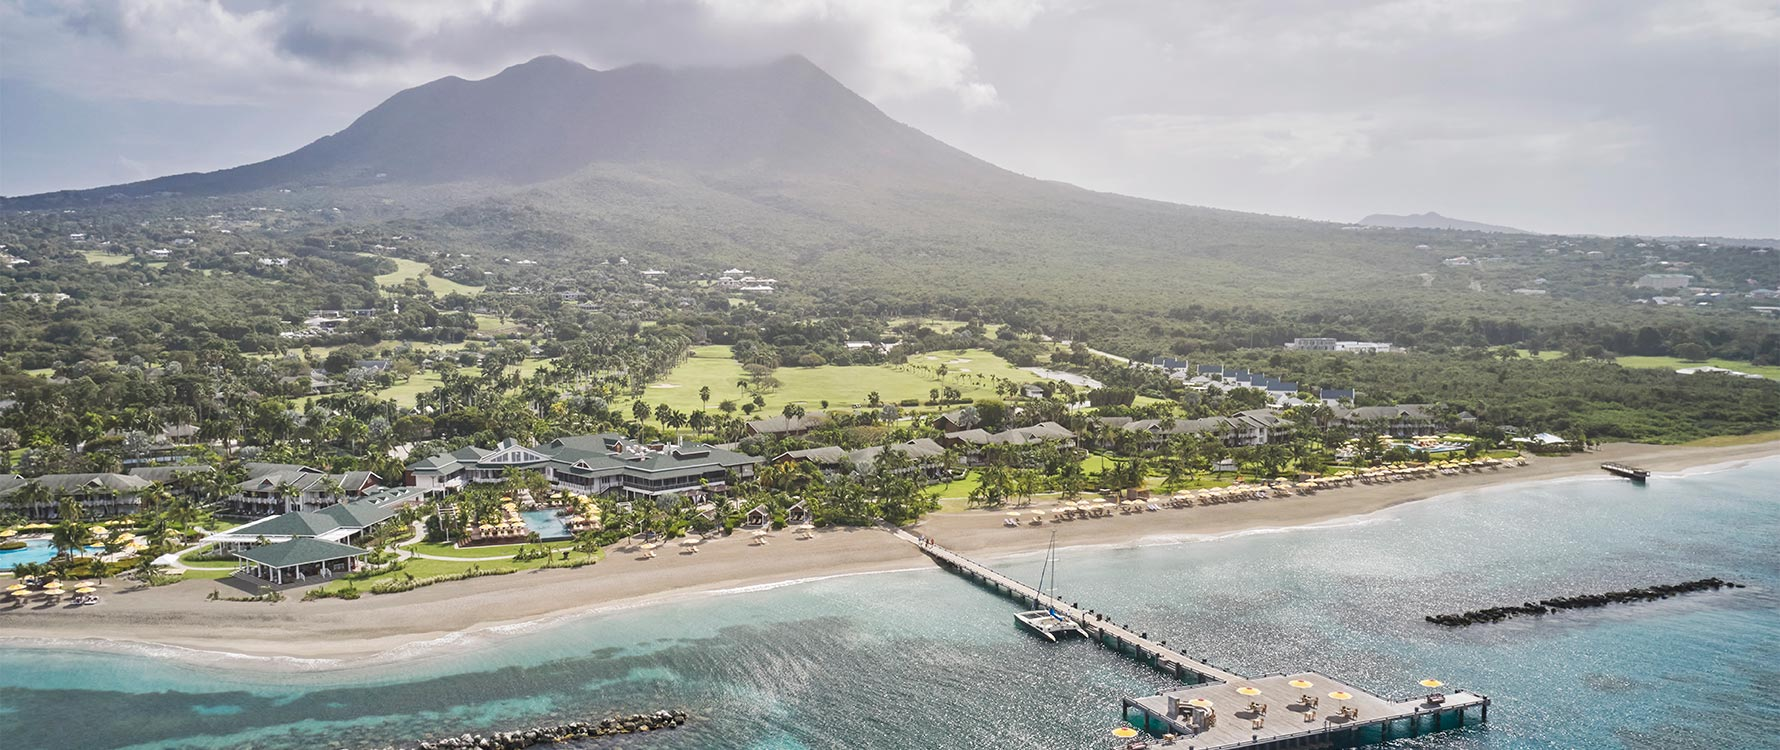 The island of Nevis with the resort in the foreground and the towering volcanic mountain in the background